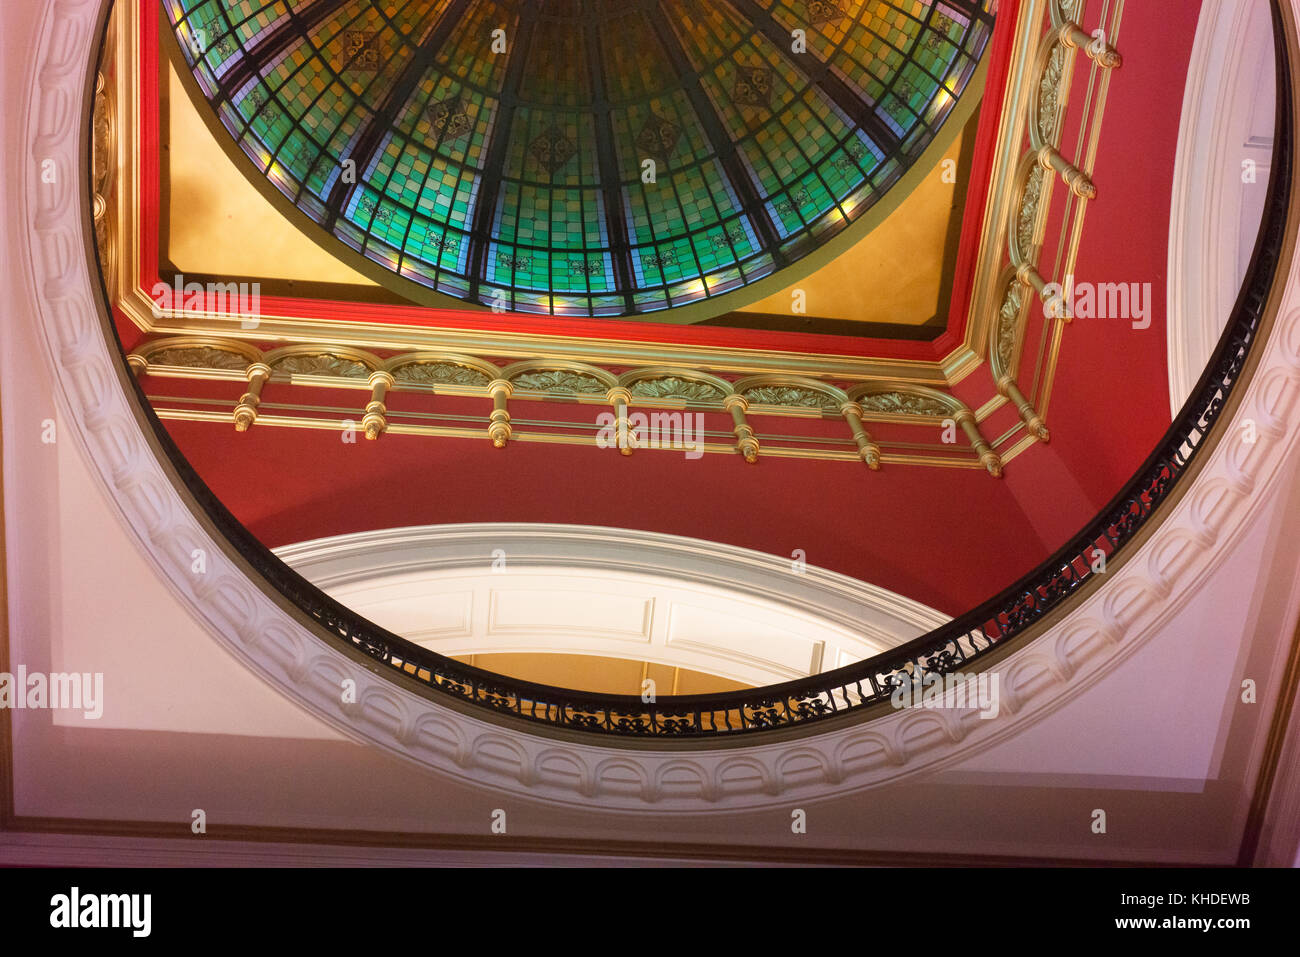 Looking up into the ceiling of the Queen Victoria building in Sydney's CBD. - Stock Image